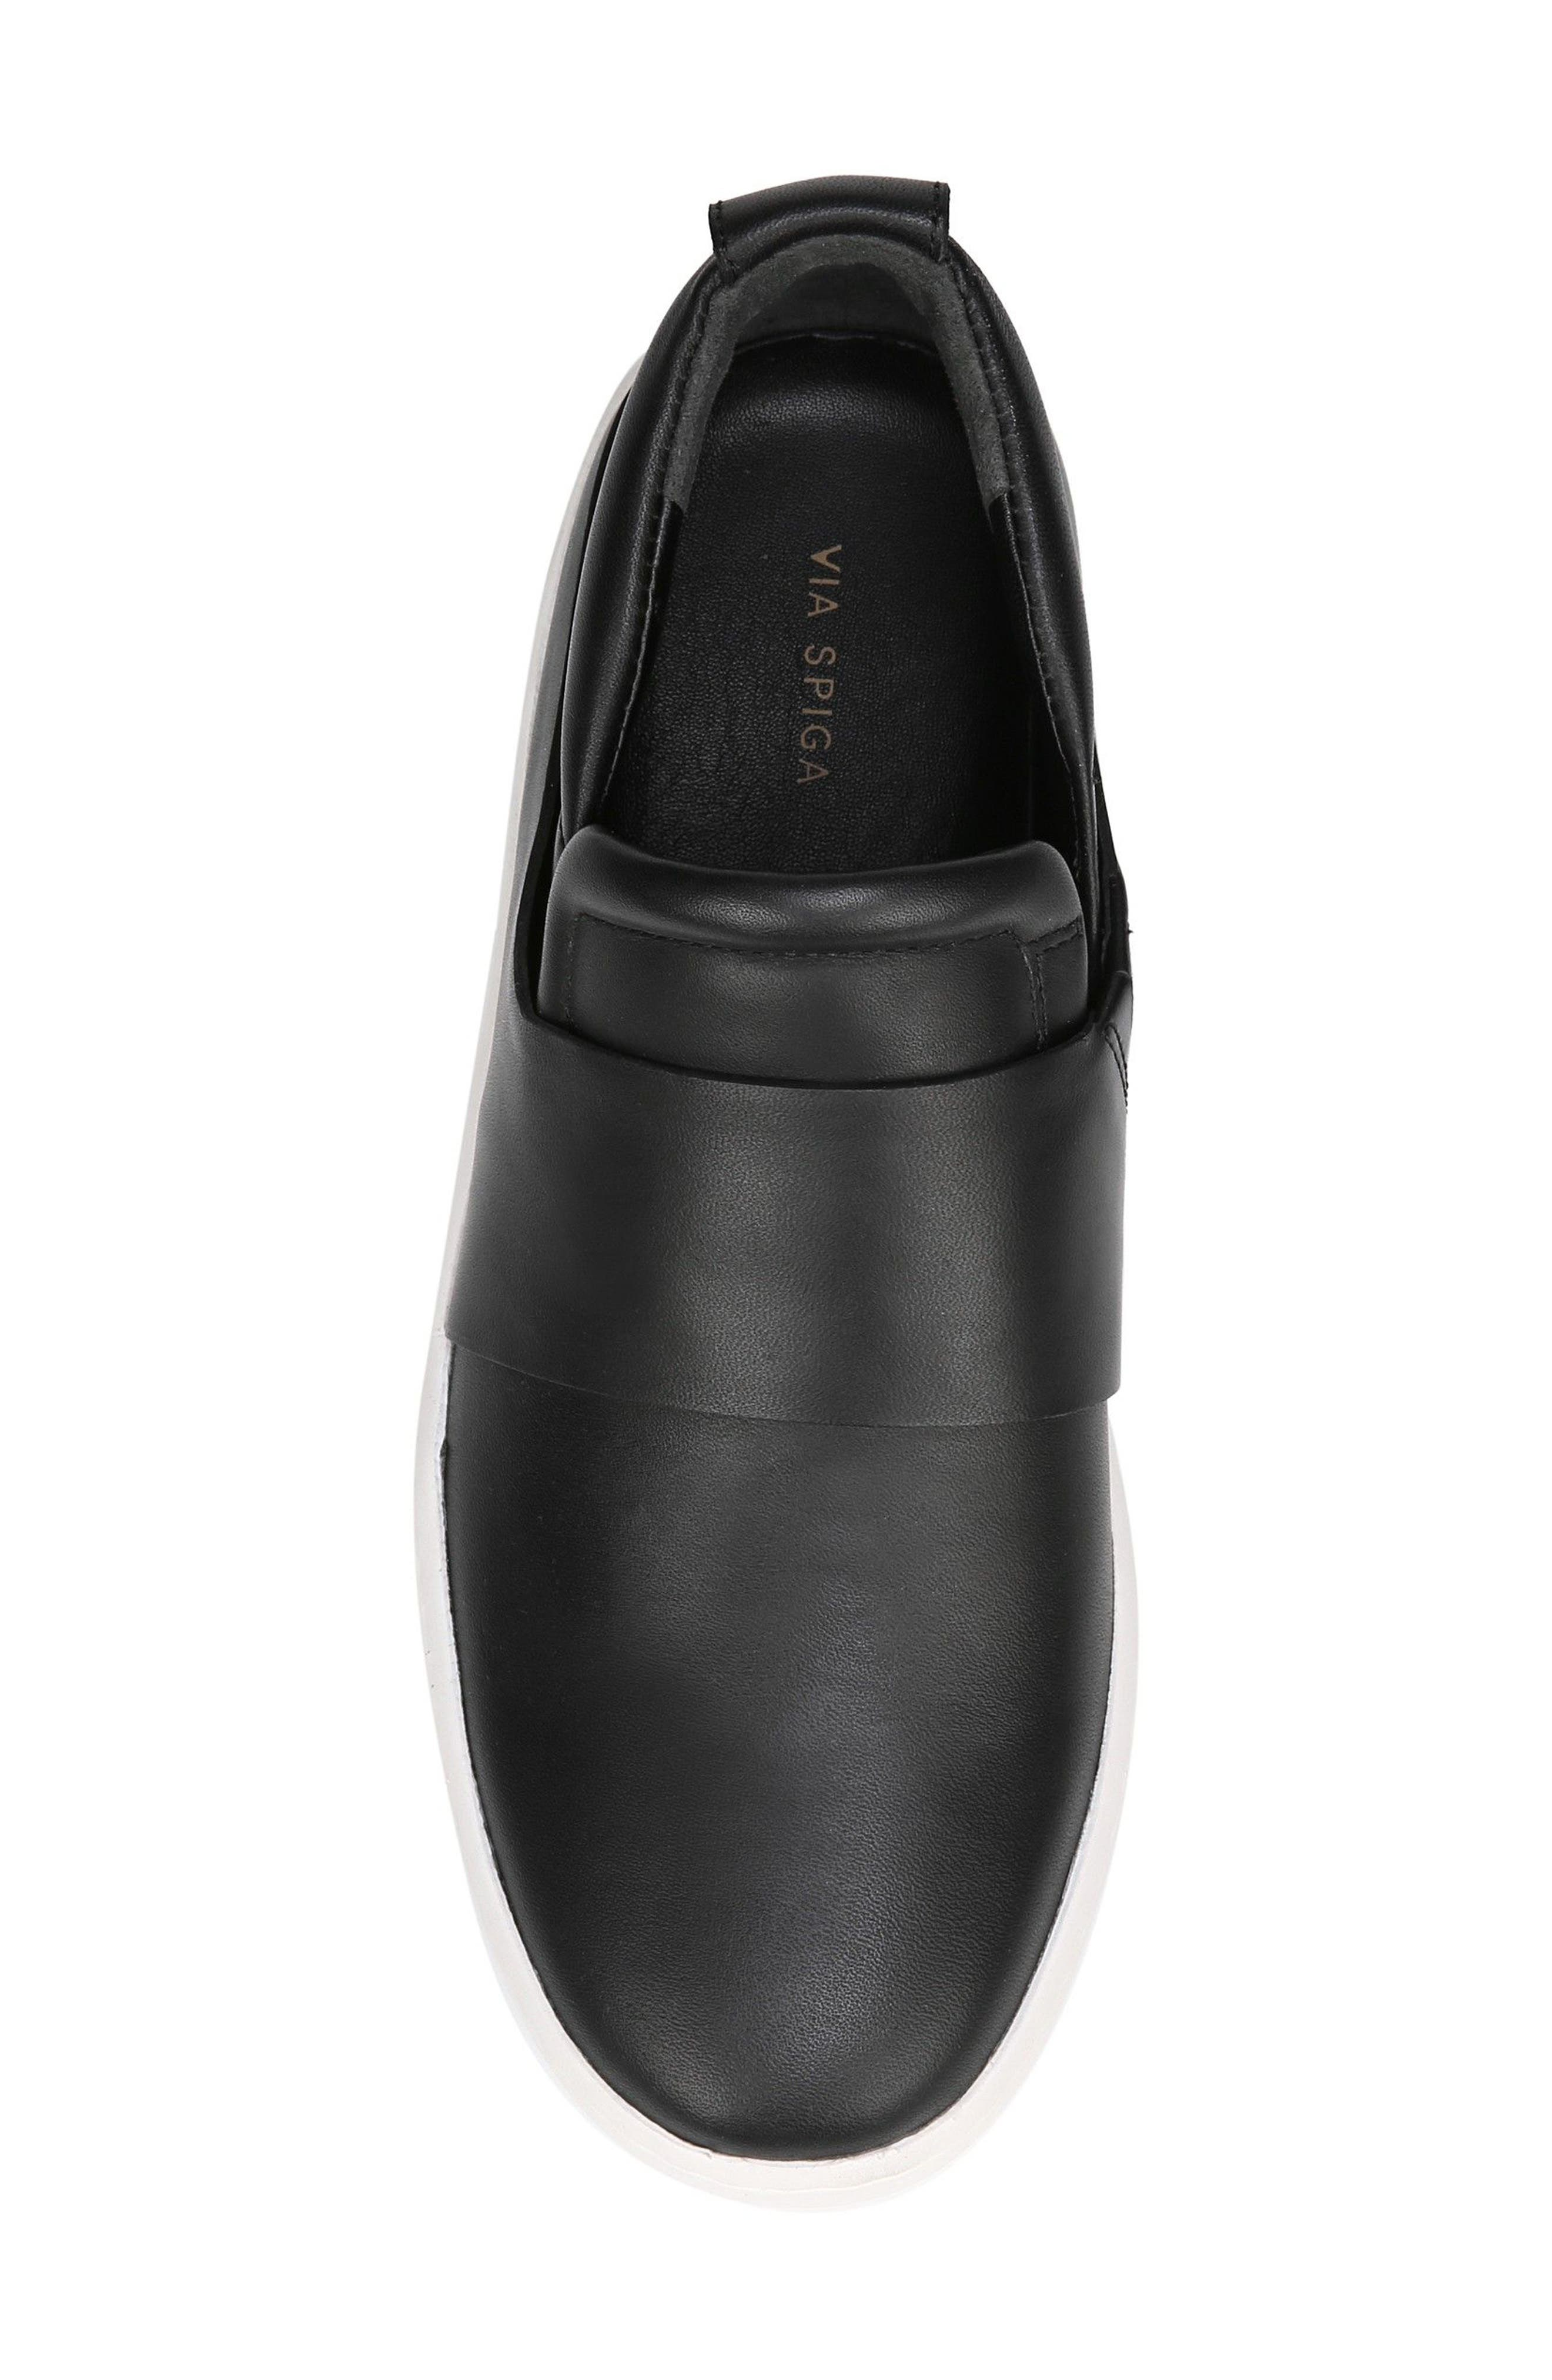 Ryder Slip-On Sneaker,                             Alternate thumbnail 5, color,                             BLACK LEATHER